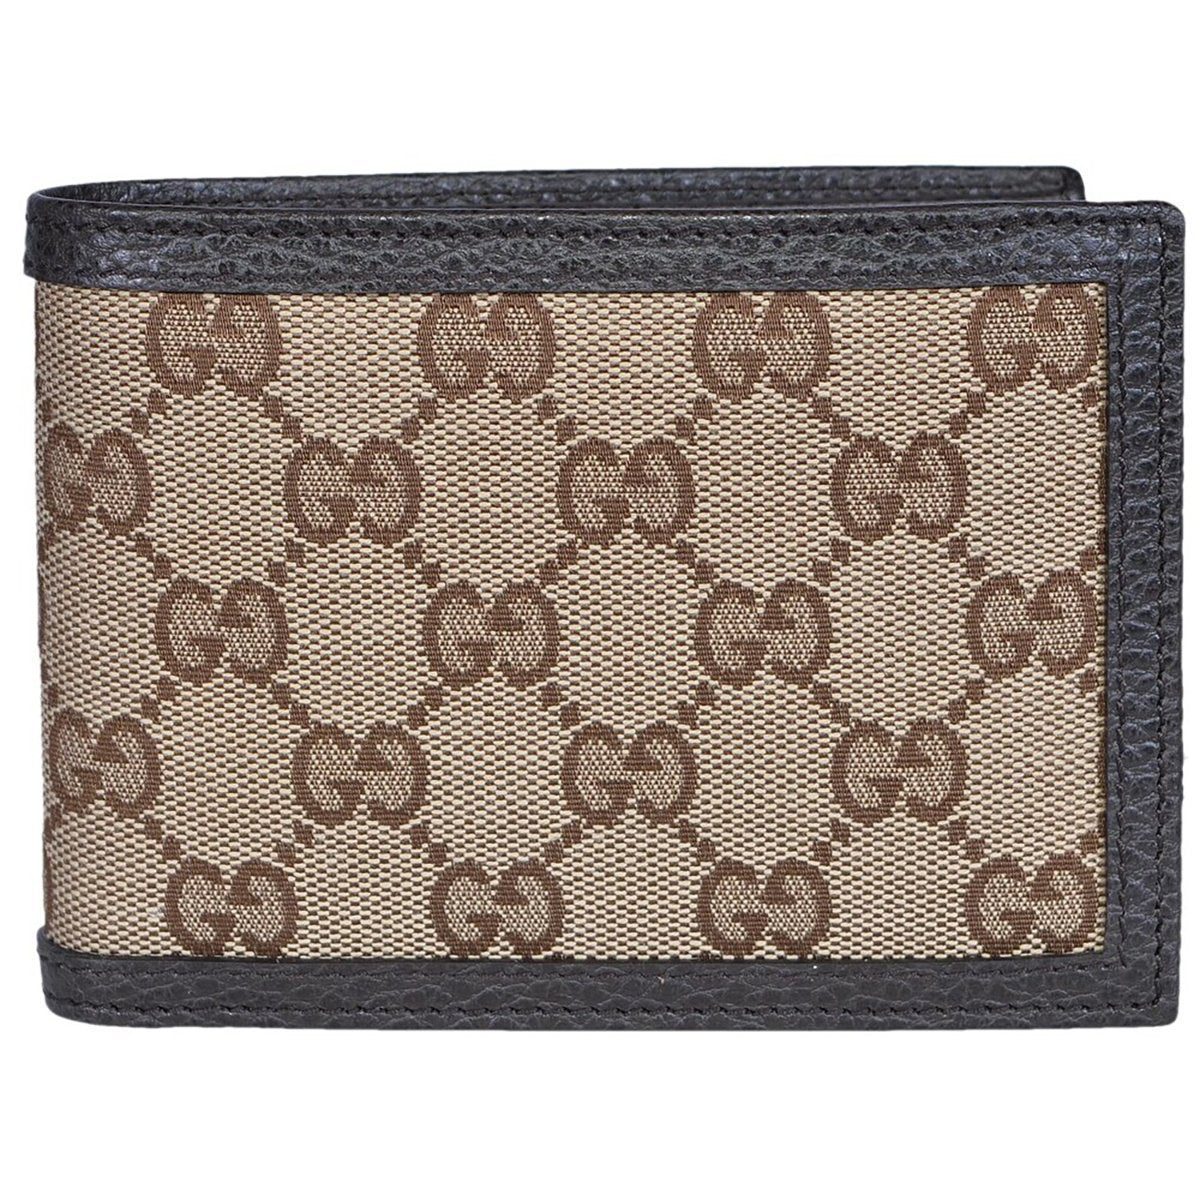 Gucci Men's Original GG Logo Canvas Web Brown Leather Bi-fold Wallet 278596